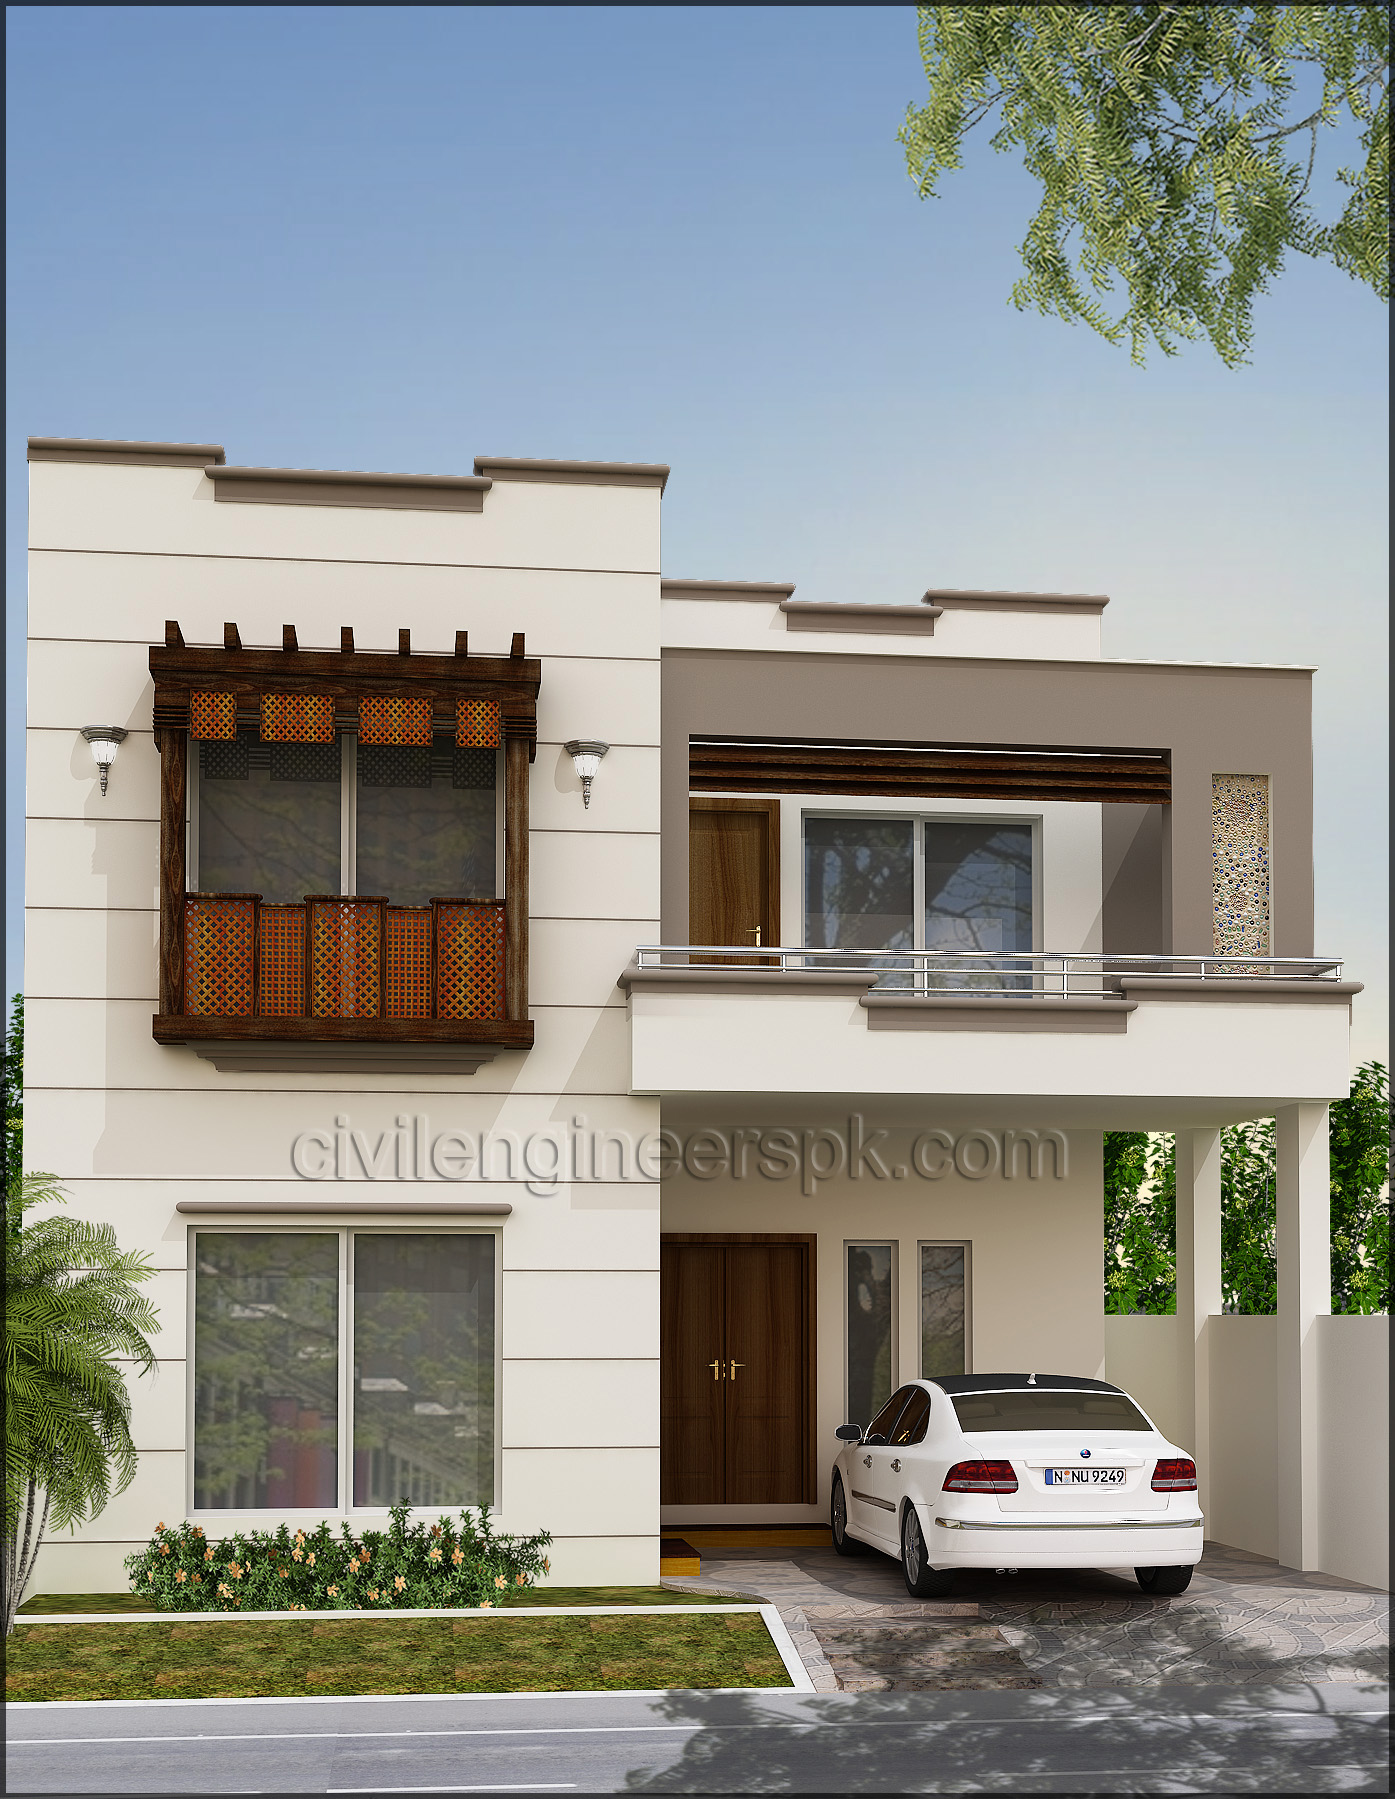 Front views civil engineers pk for Front look of small house